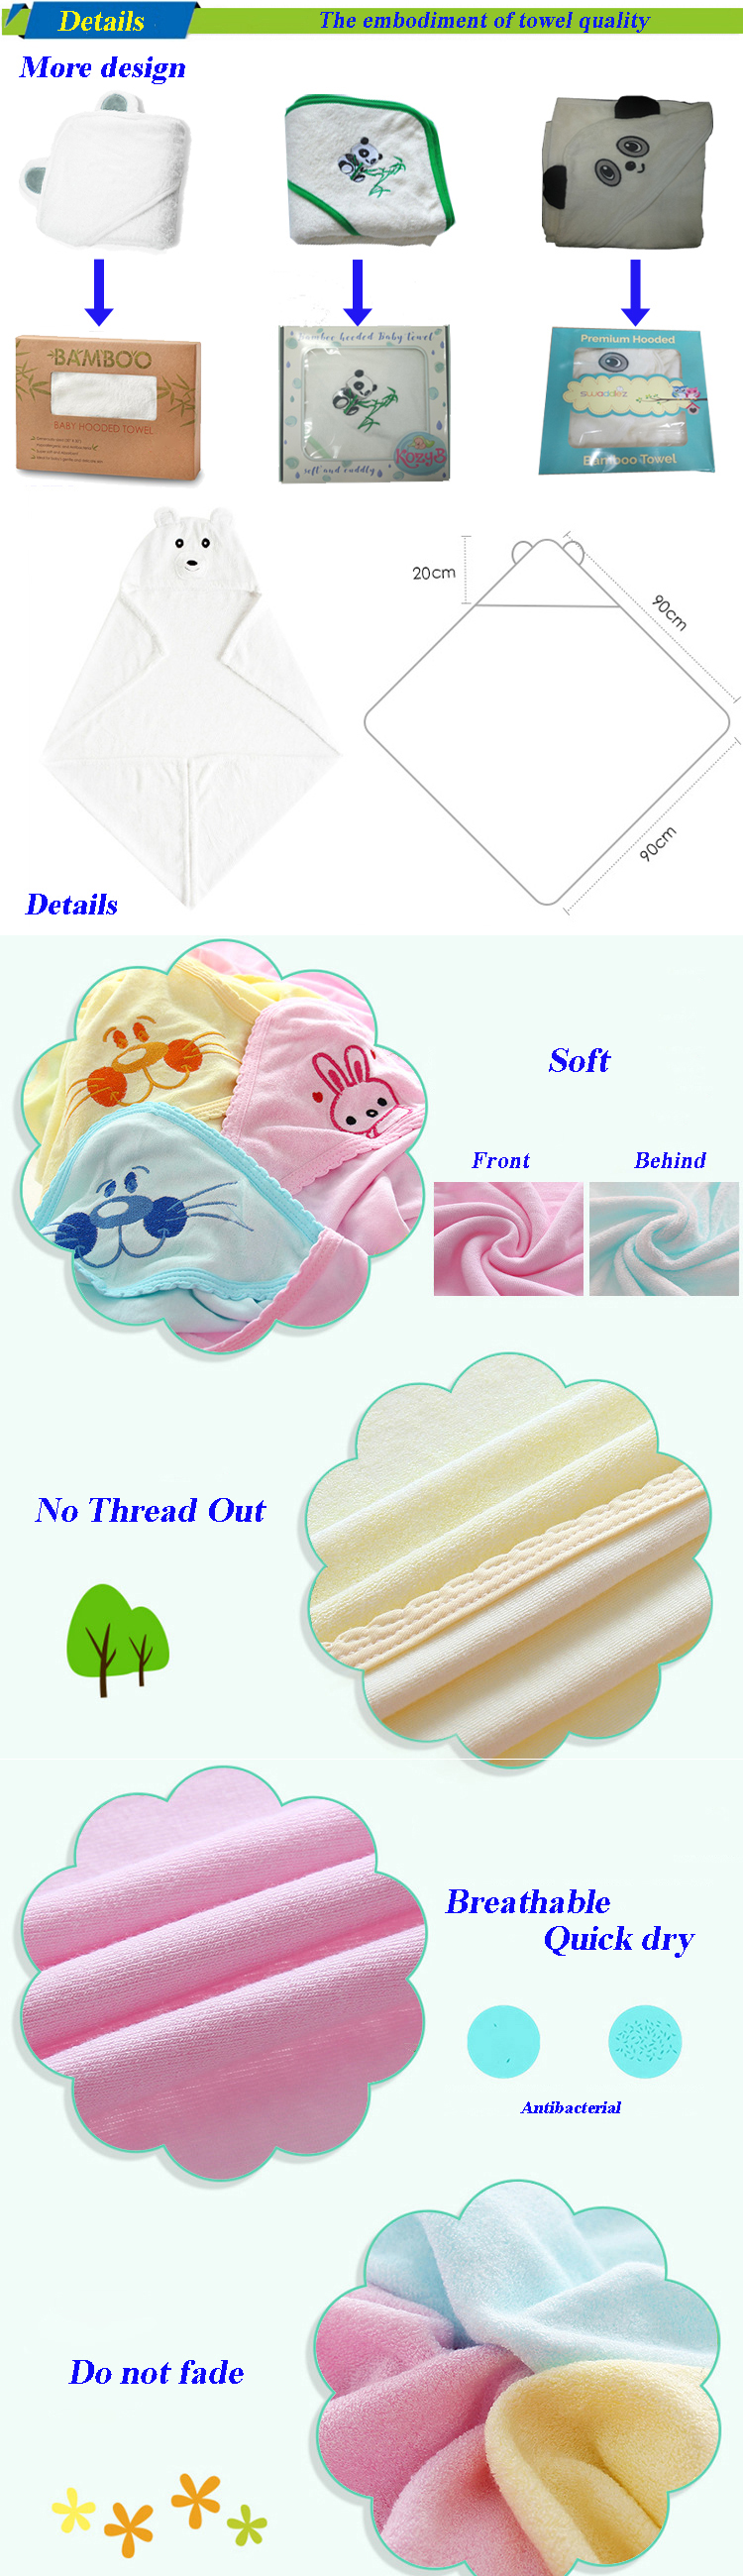 Use Baby Hooded Towel